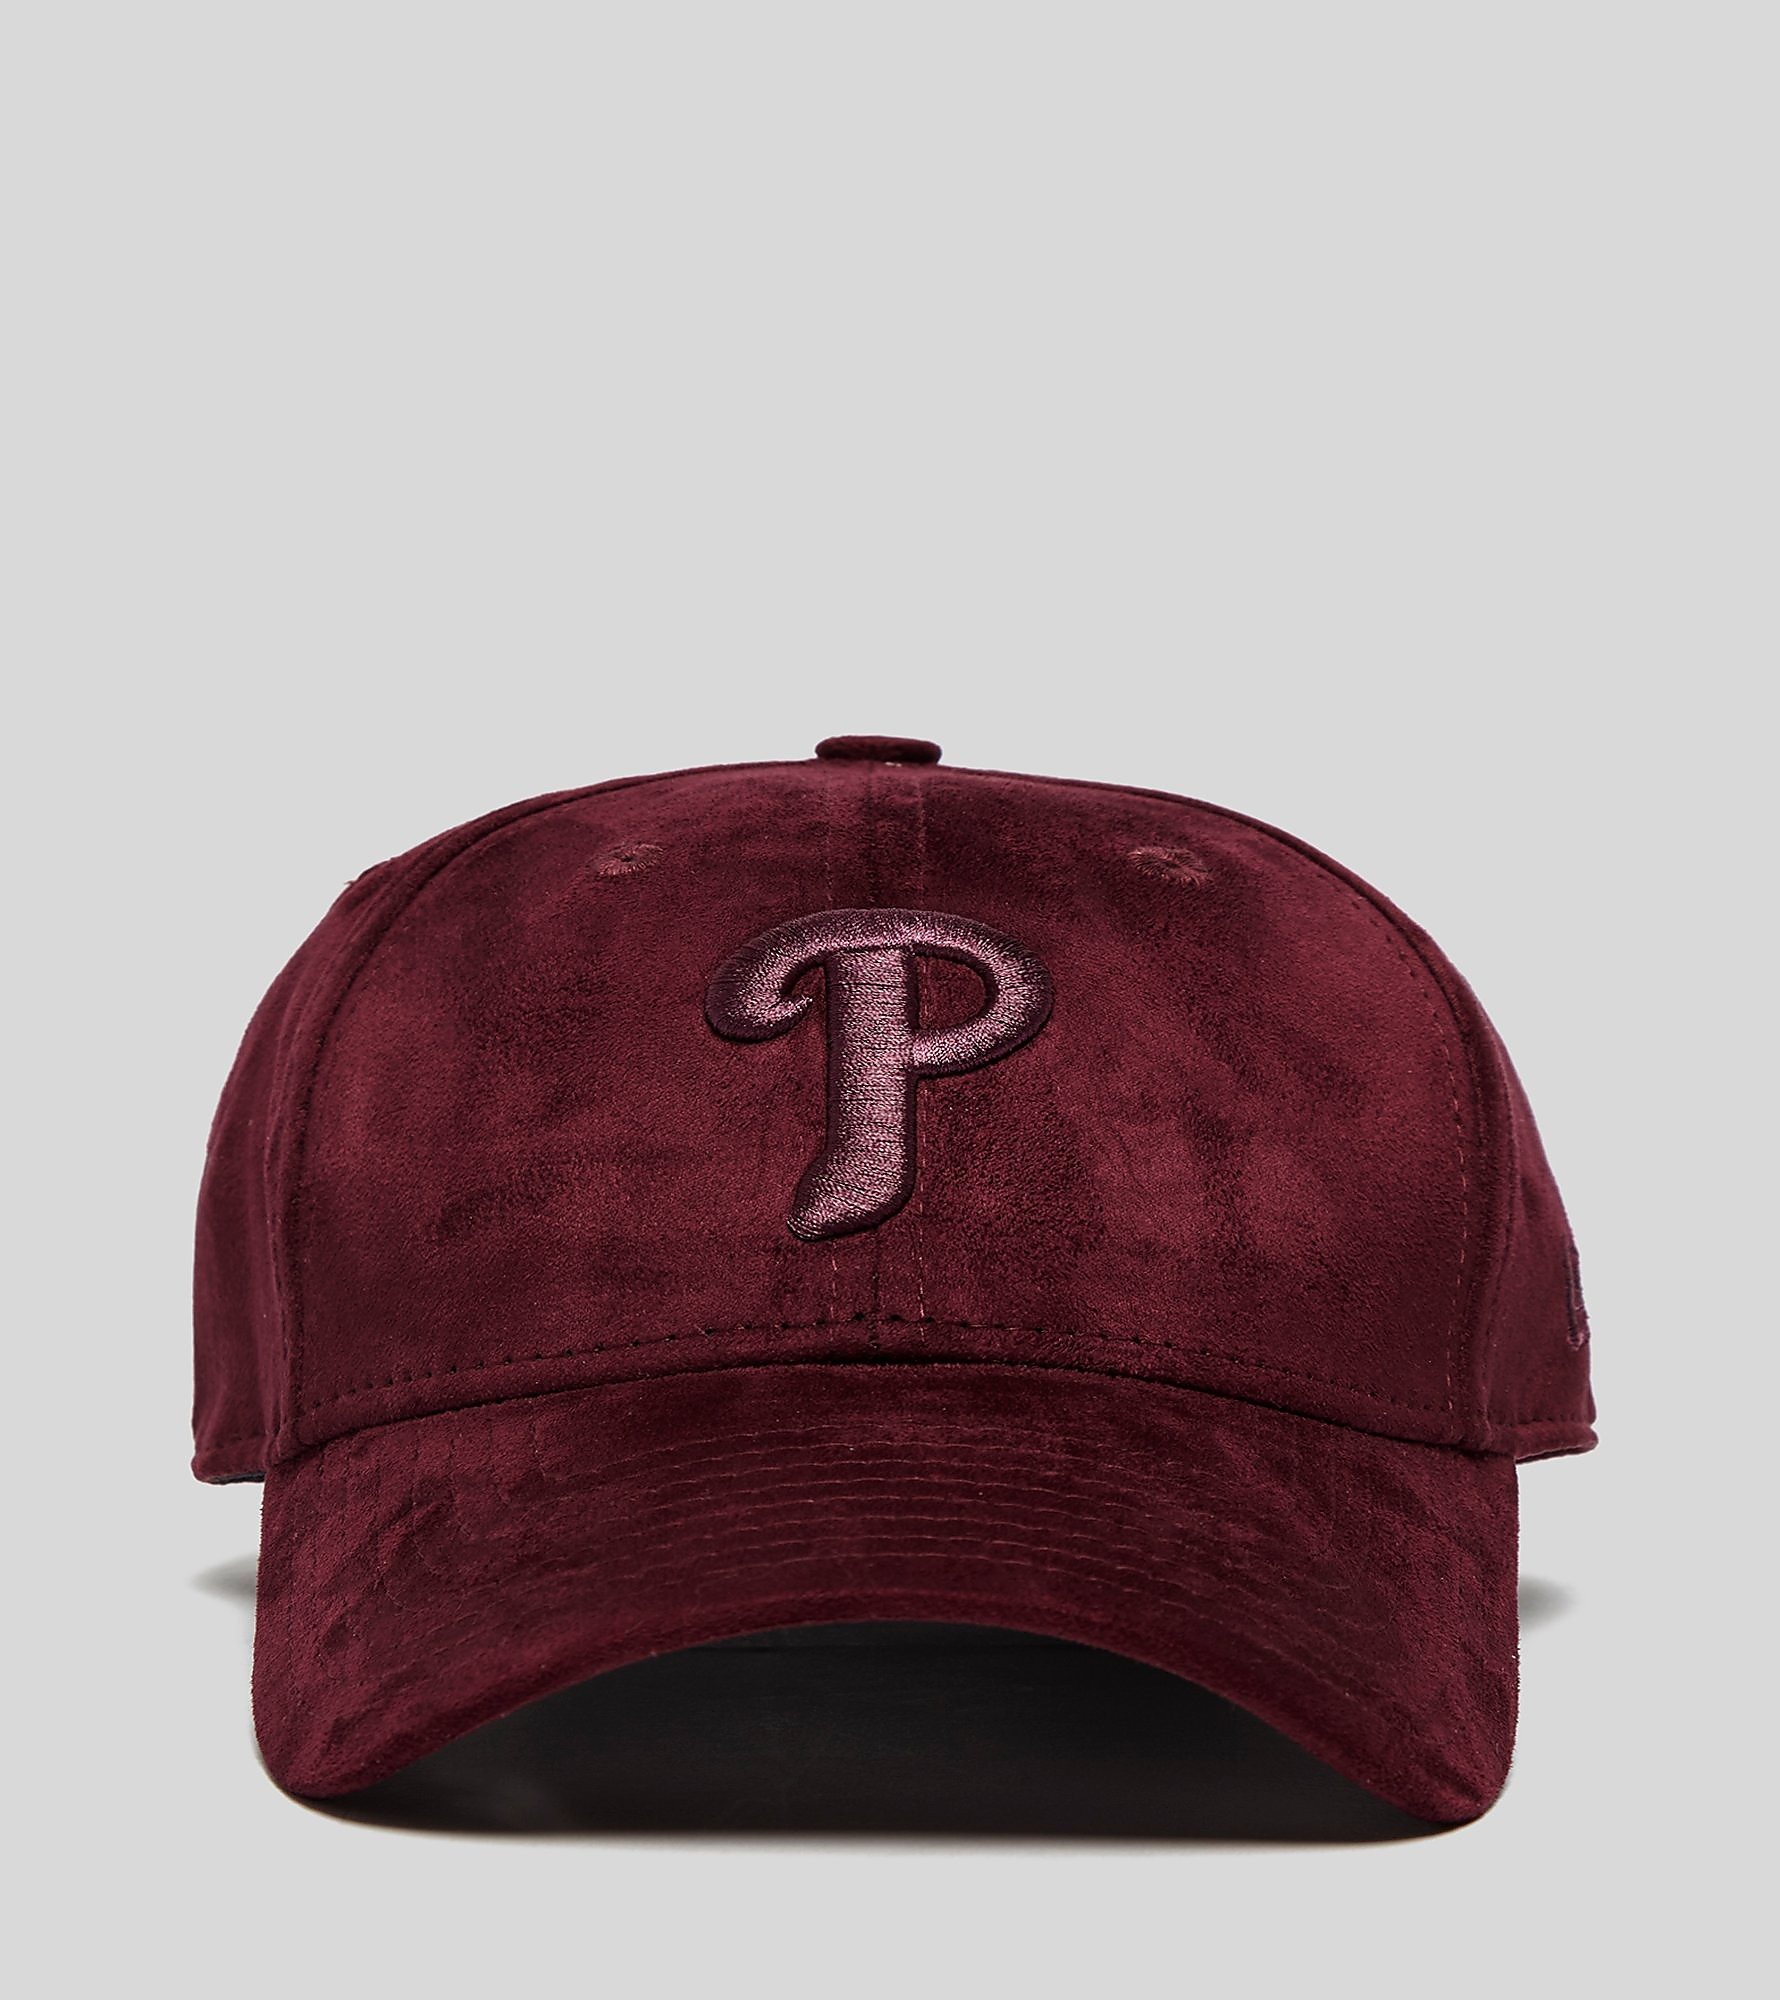 New Era 9FORTY Philadelphia Phillies Suede Cap